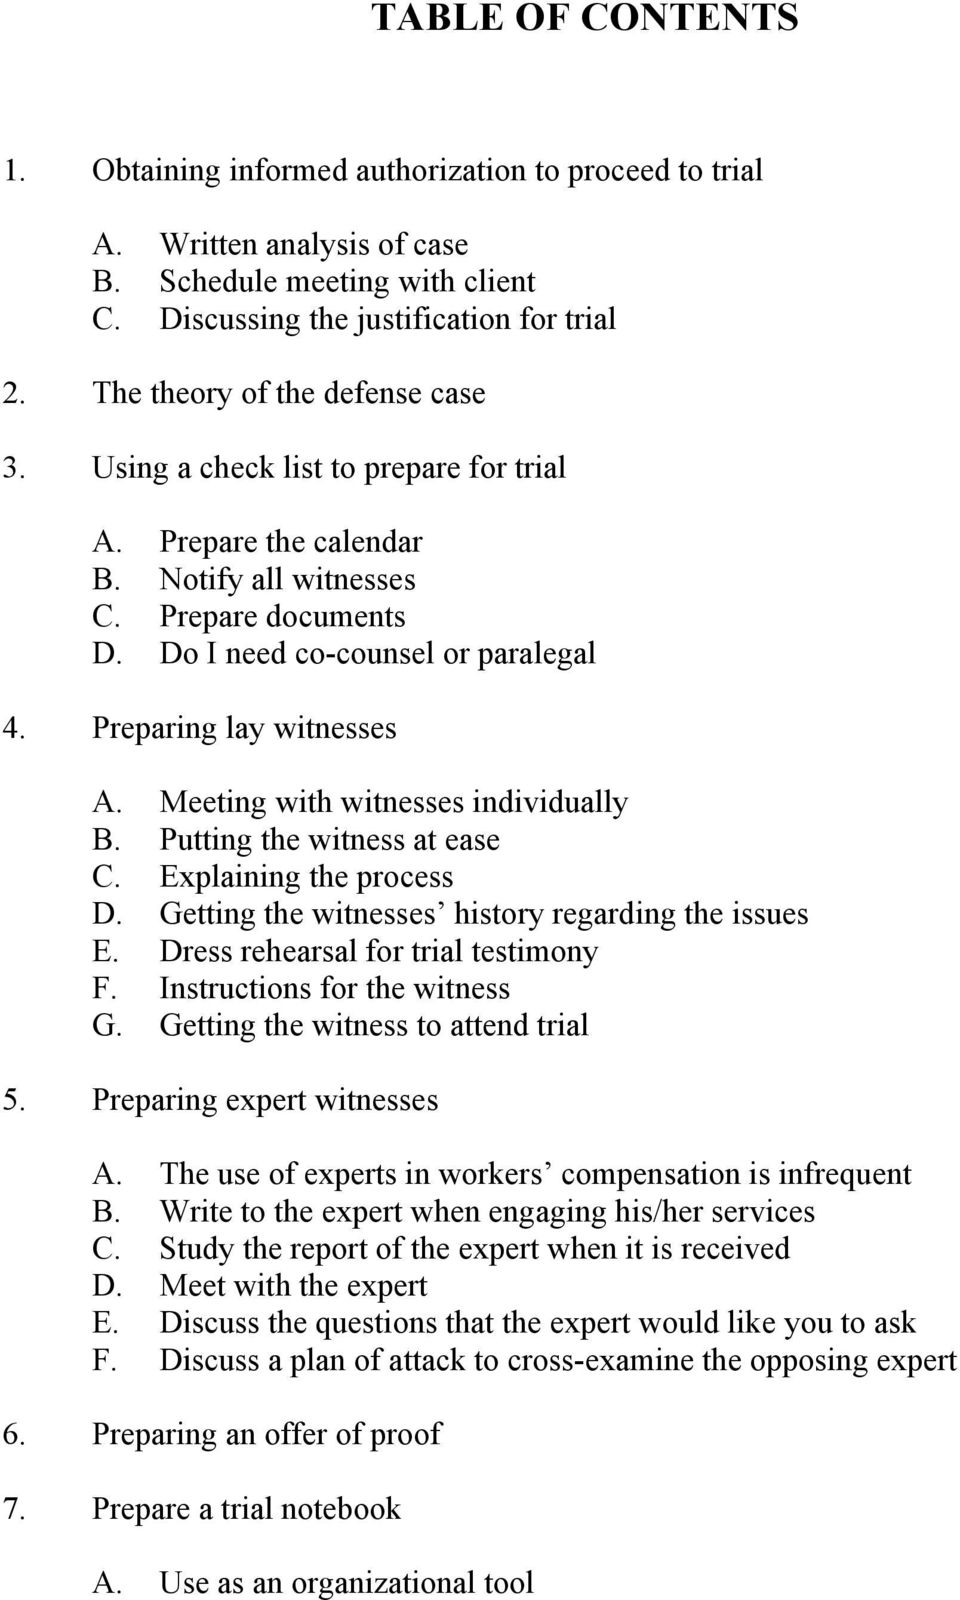 Preparing lay witnesses A. Meeting with witnesses individually B. Putting the witness at ease C. Explaining the process D. Getting the witnesses history regarding the issues E.